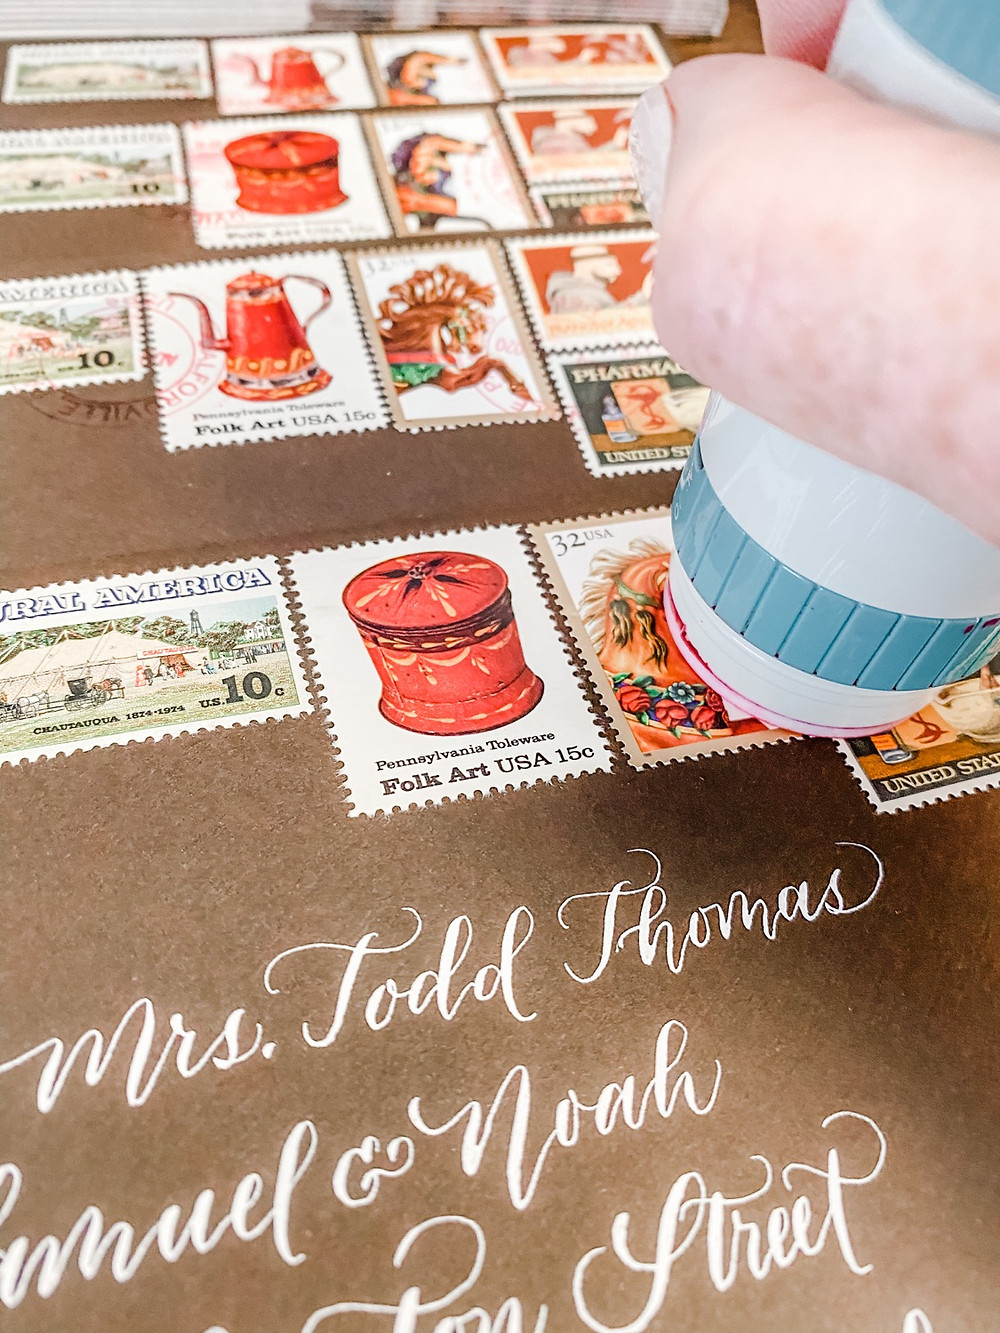 Brown envelope with Vintage Postage being hand canceled